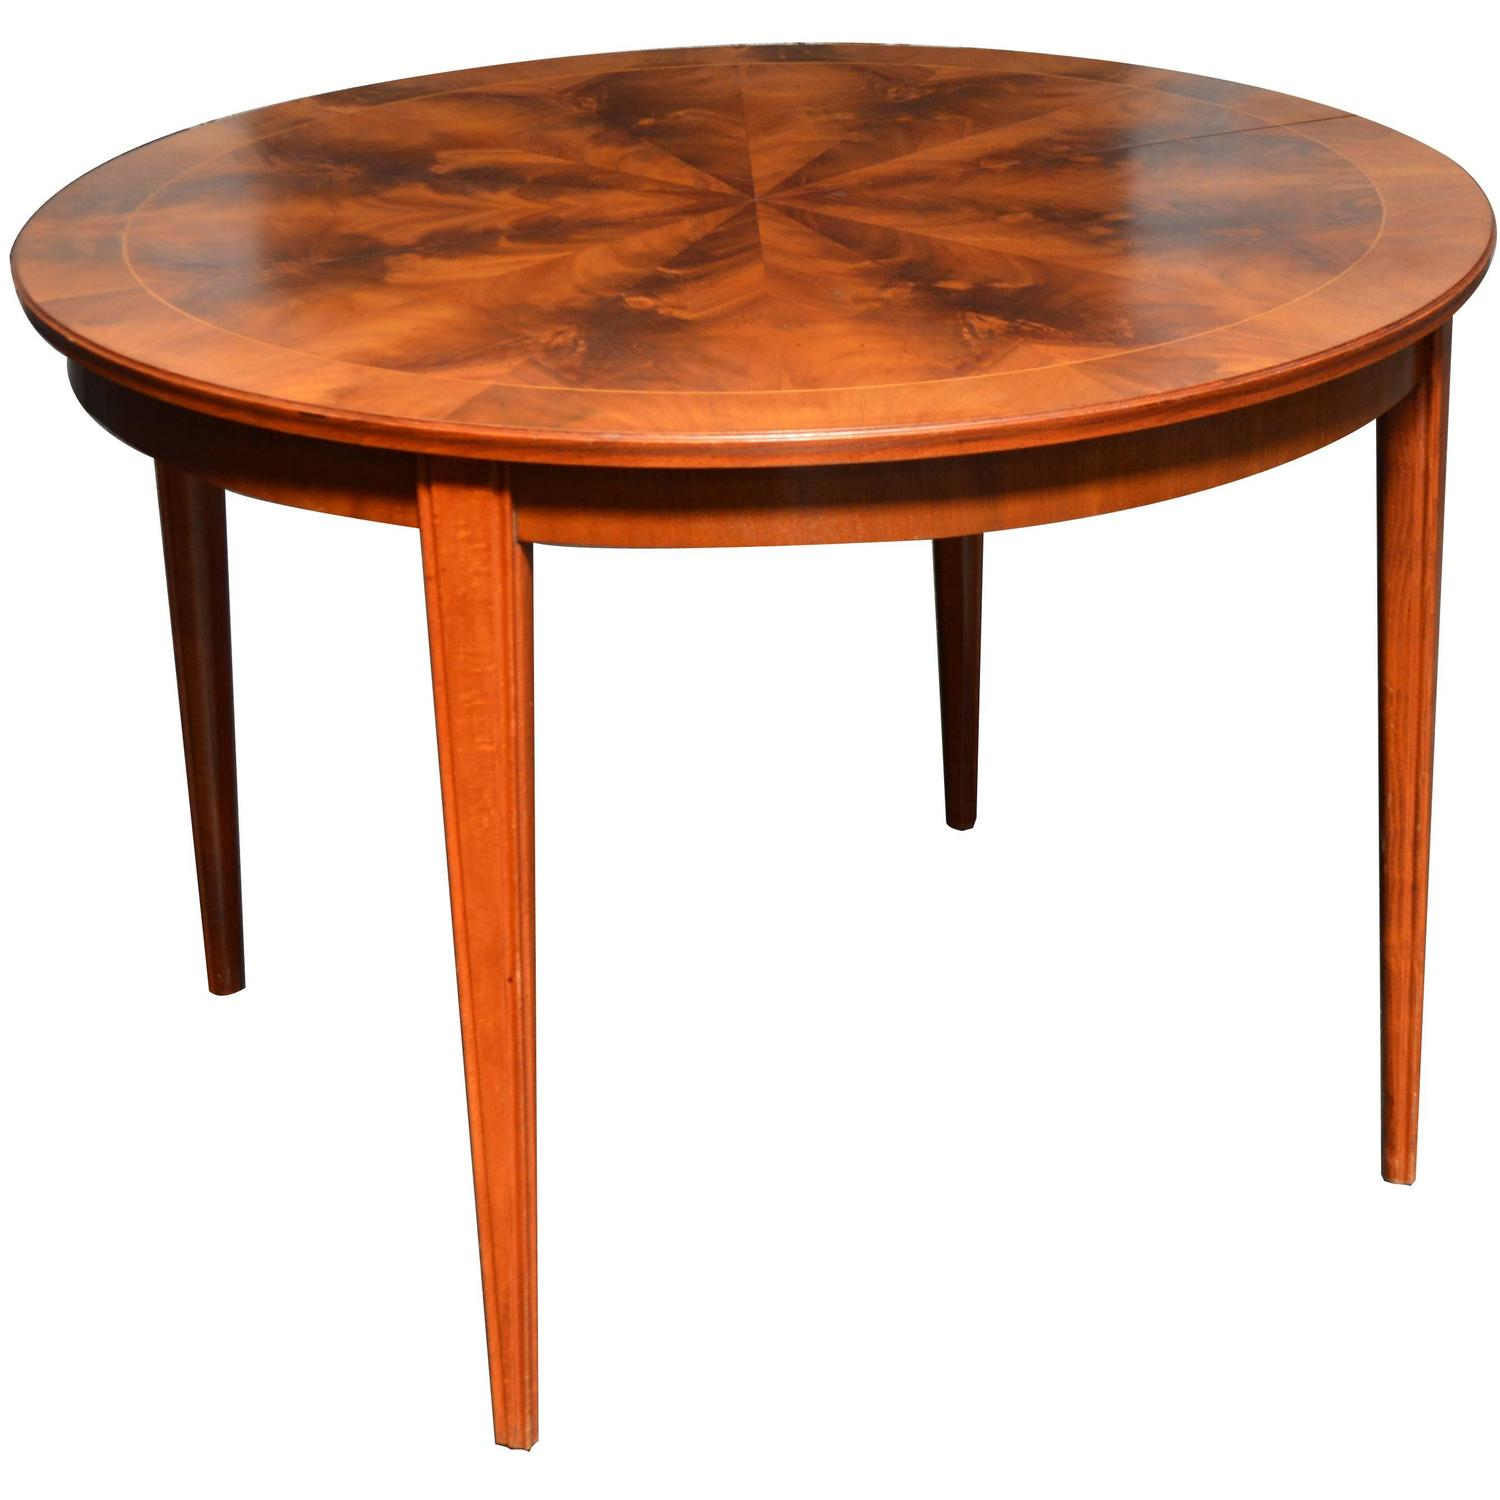 Round Mahogany Svenska Mobler Dining Table For Sale At 1stdibs